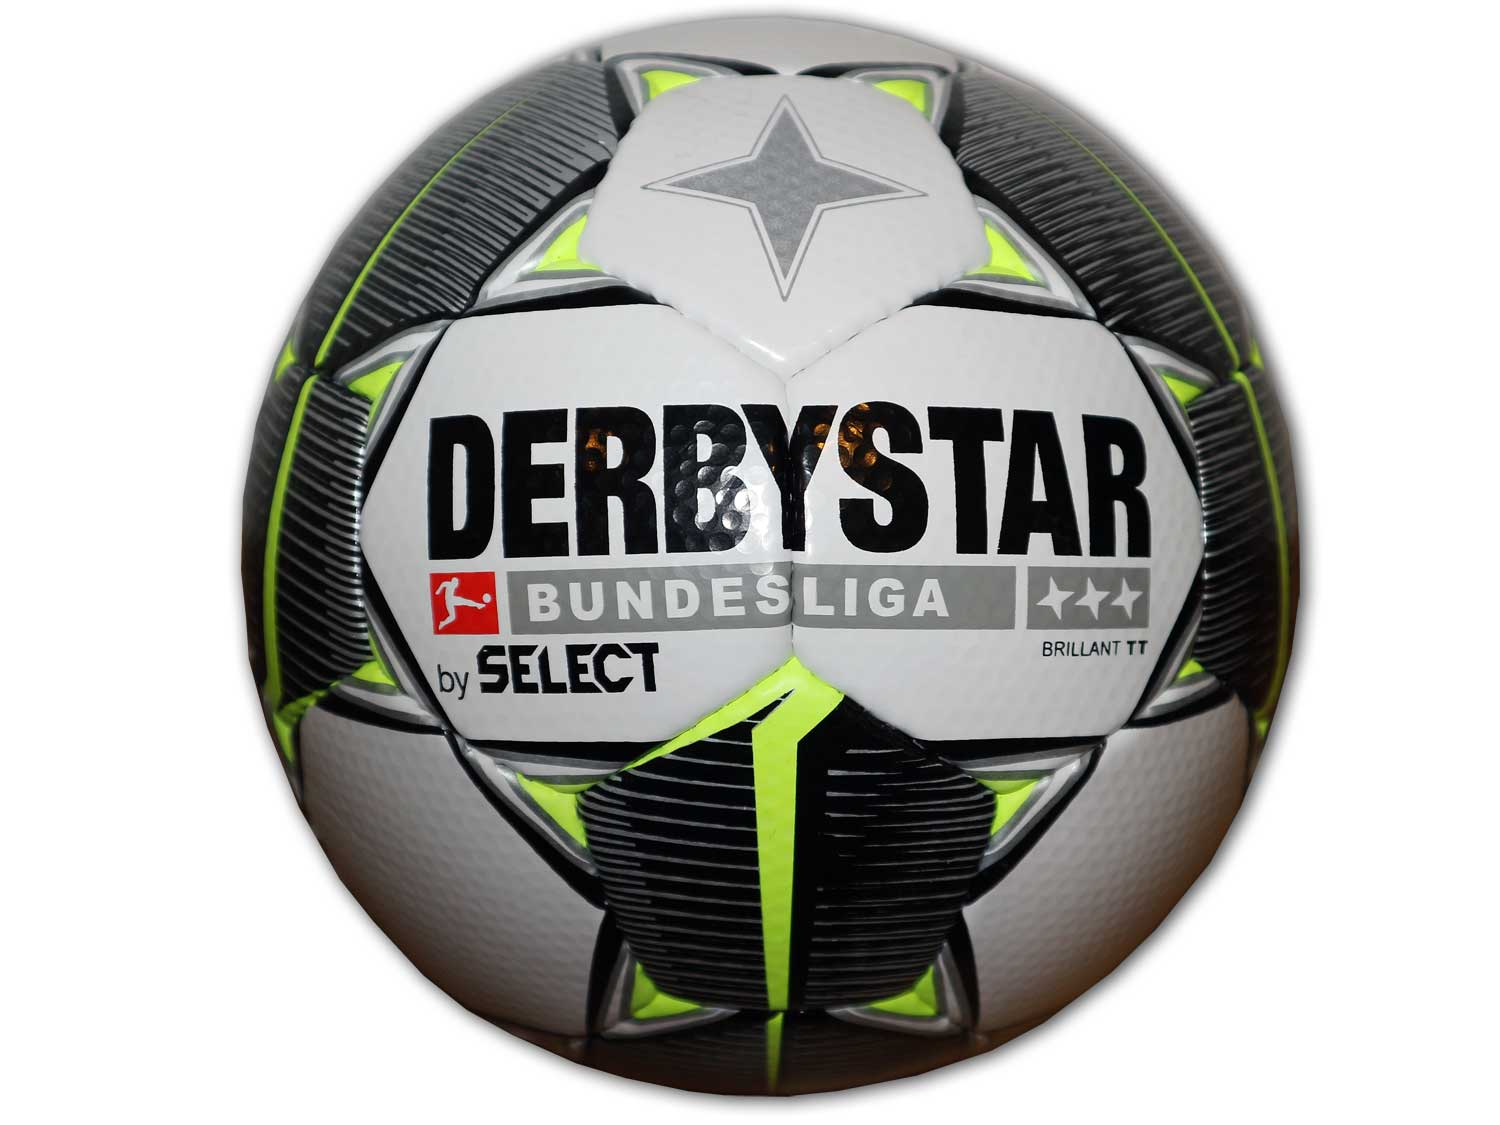 Derbystar Bundesliga Brillant Tt Fussball